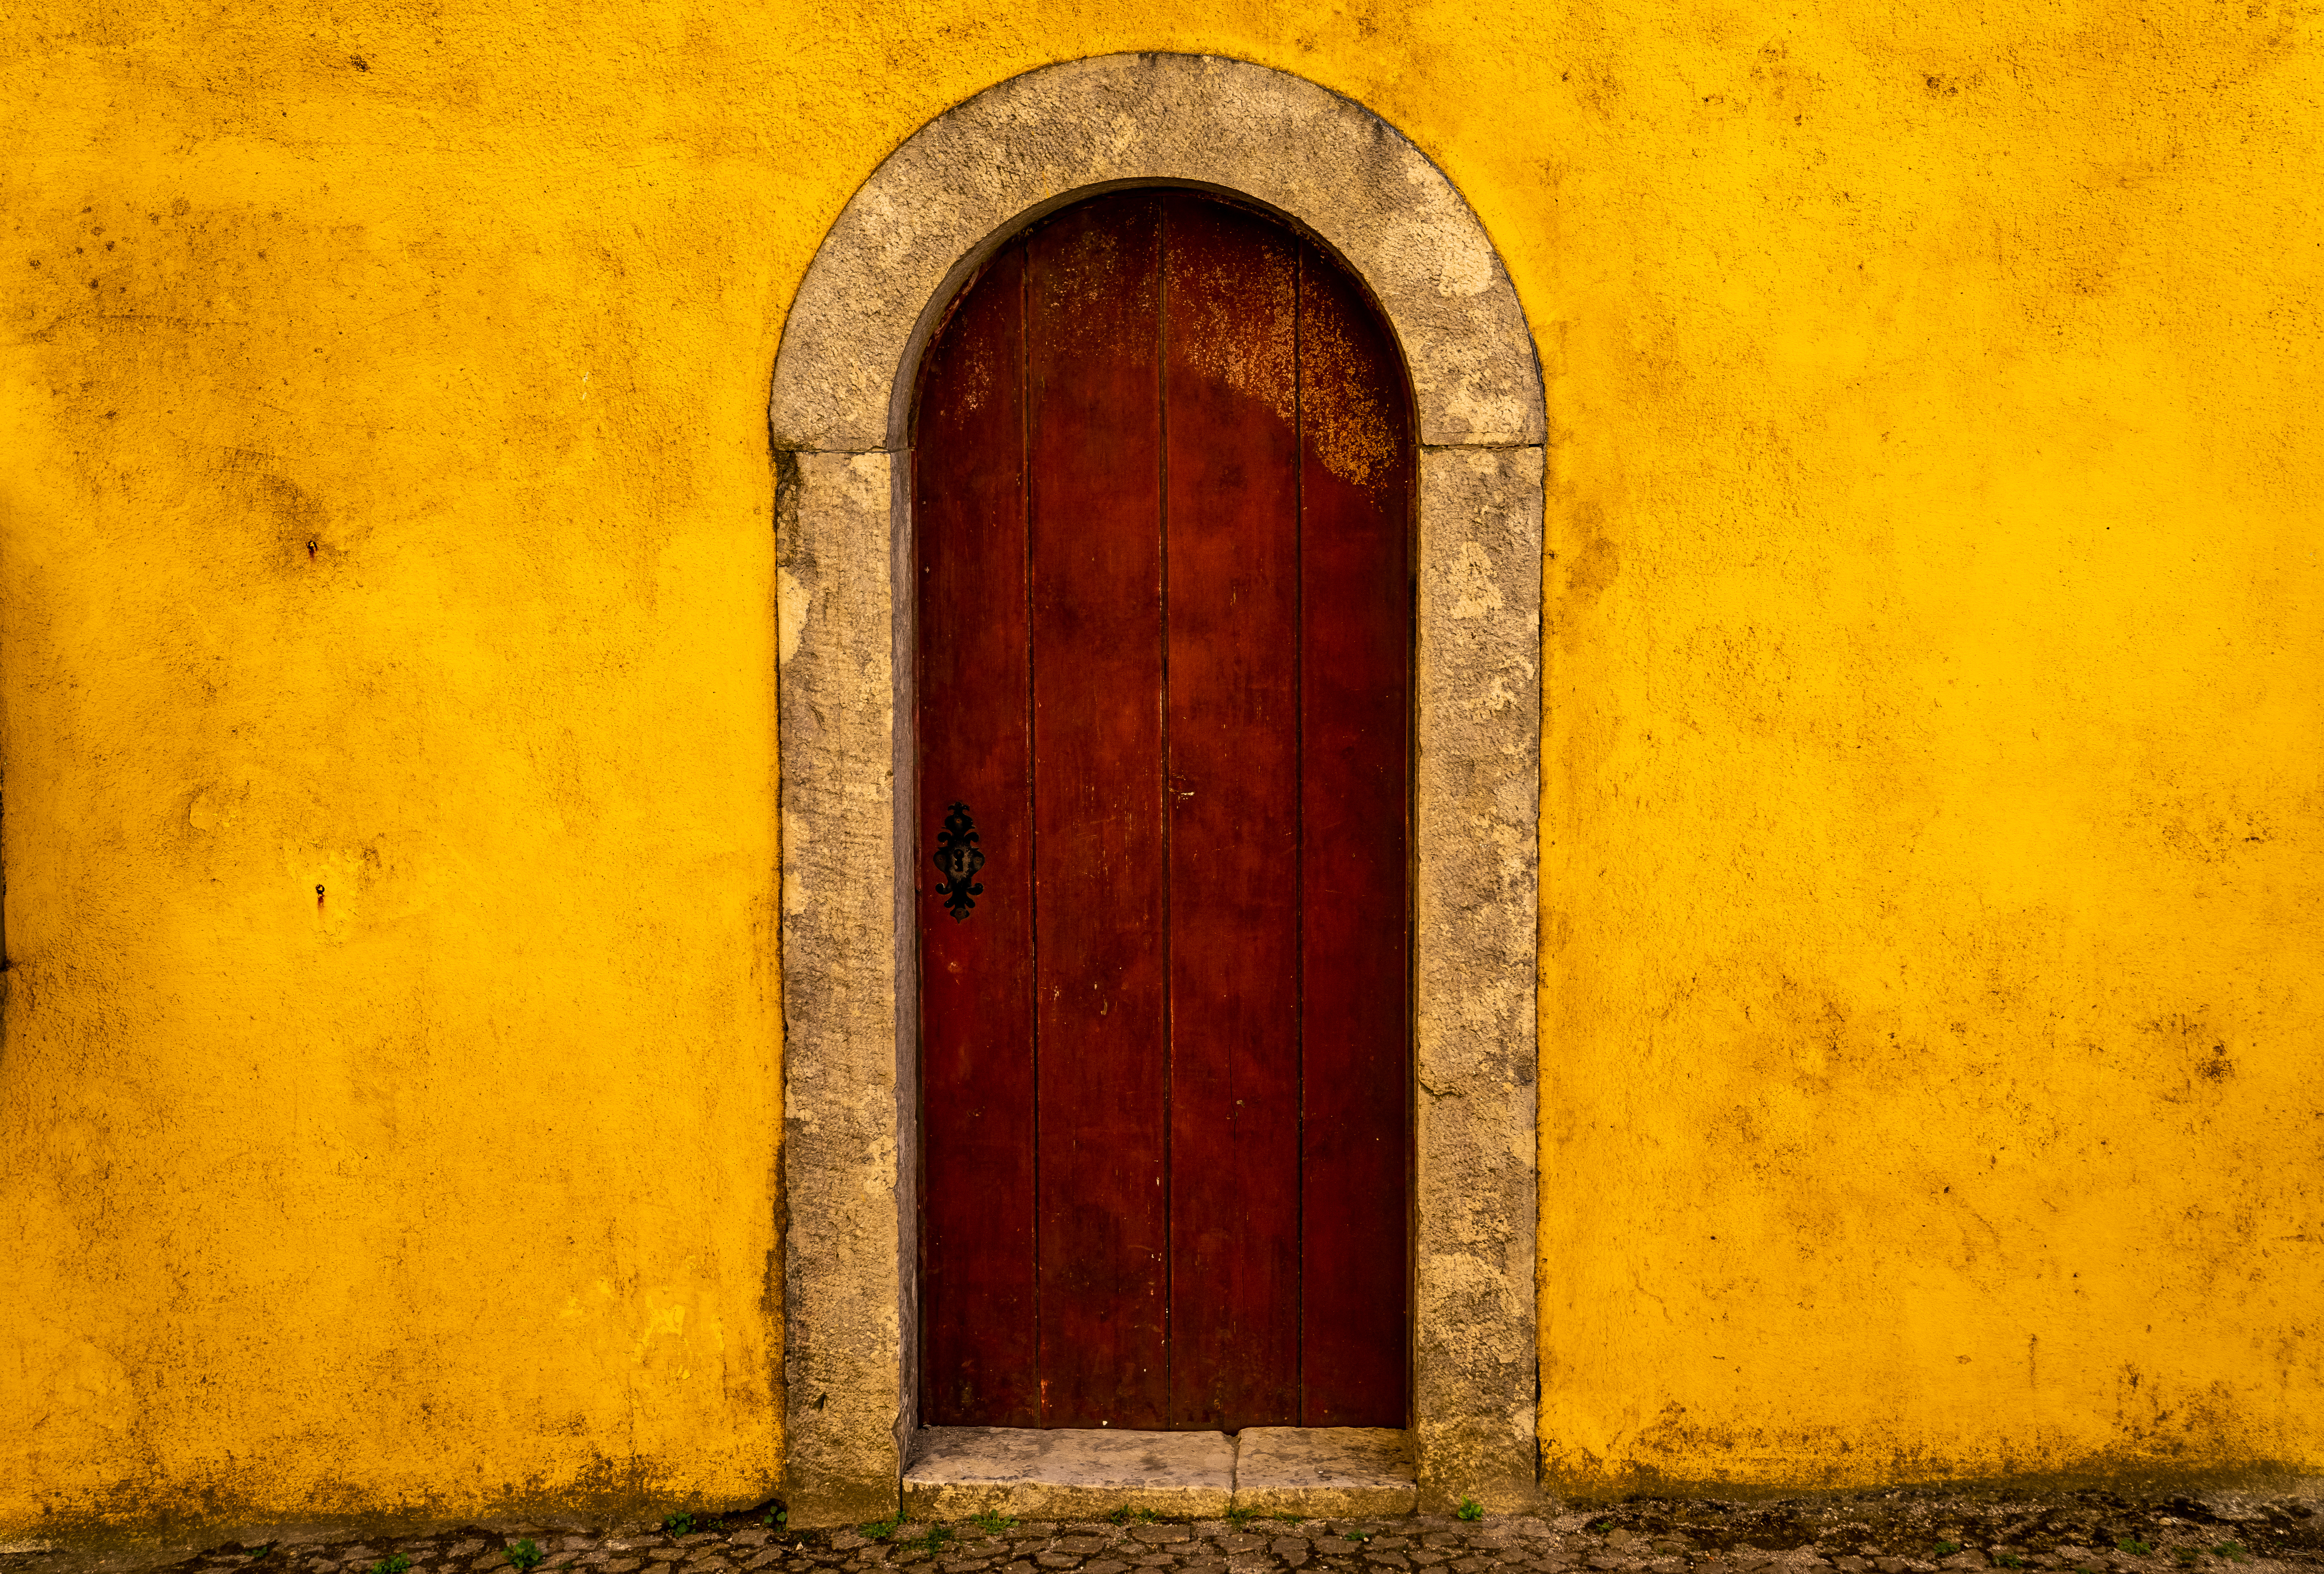 lone red door in a bright yellow stucco wall